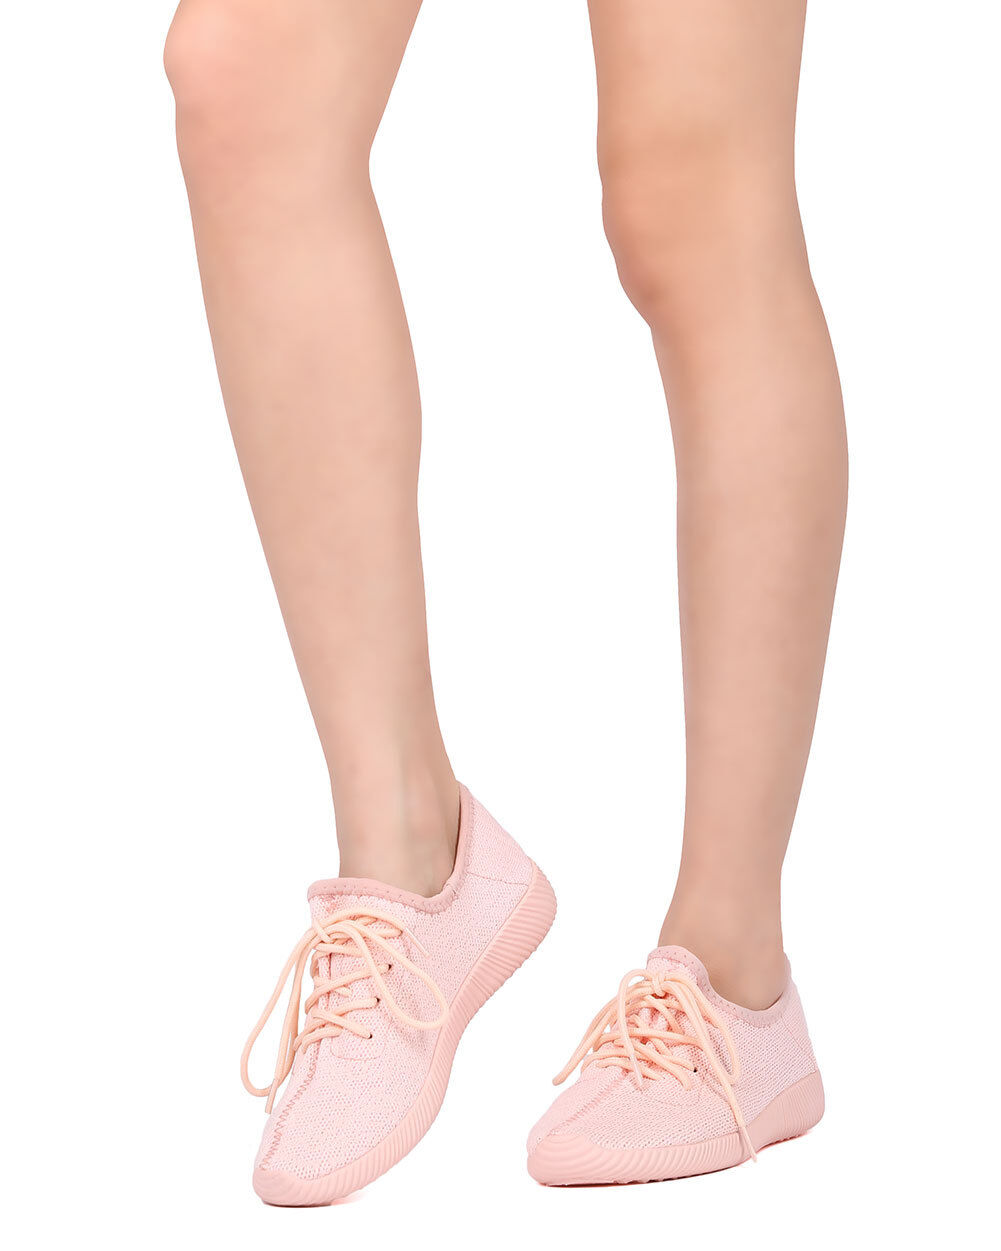 New Women Qupid Up Nacara-01 Fabric Knitted Lace Up Qupid Jogger Sneaker 19cc50